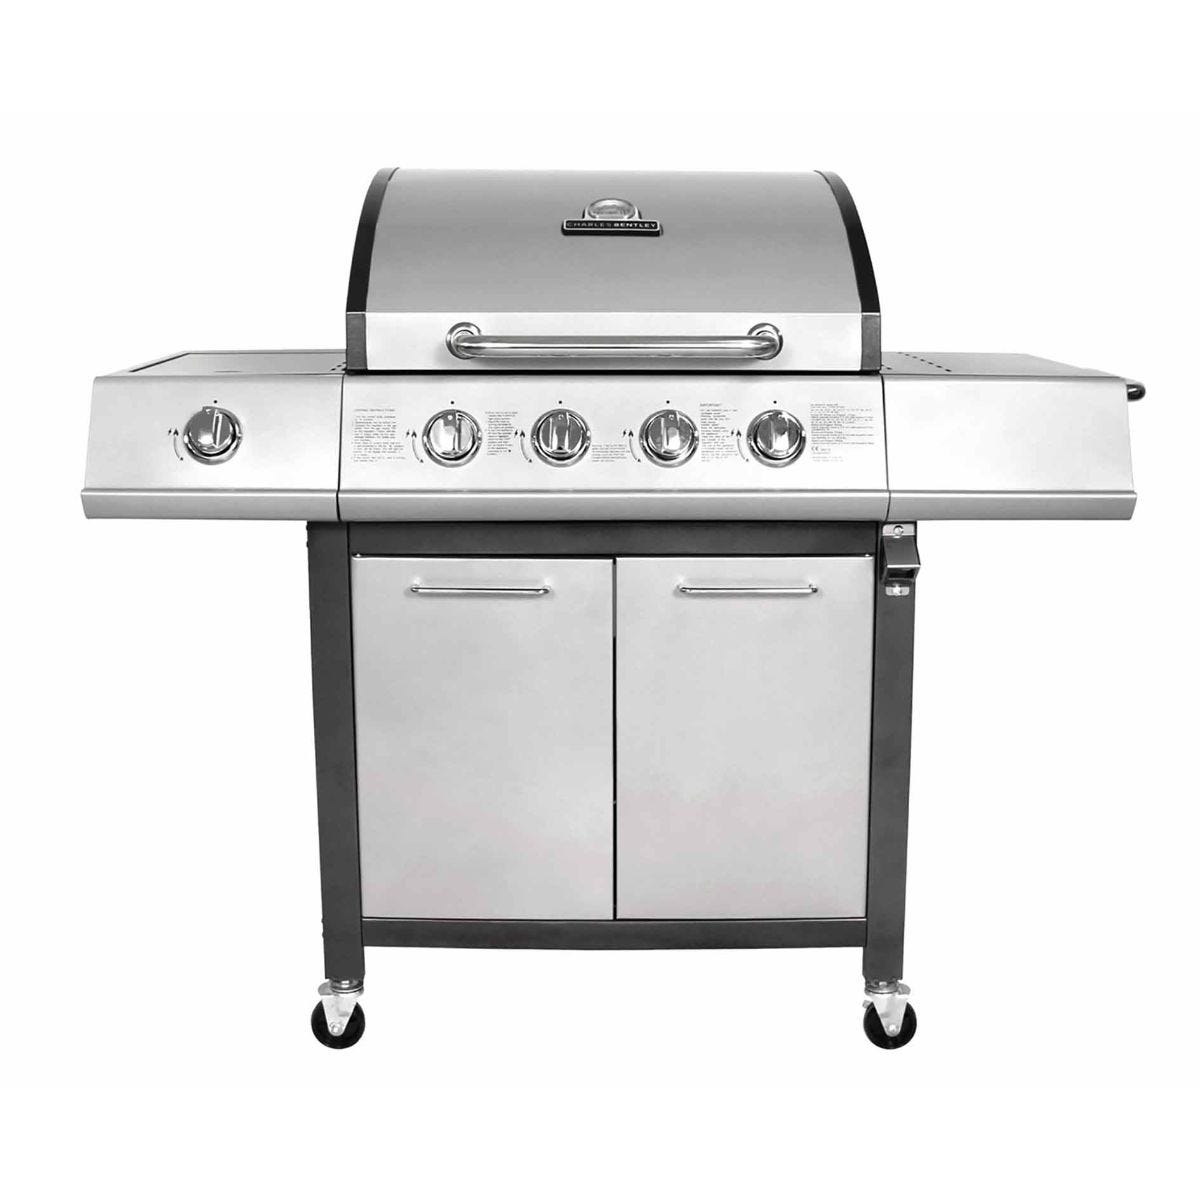 Image of Charles Bentley 5 Burner Premium Gas BBQ 4 x Burner plus 1 Side Burner, Grey